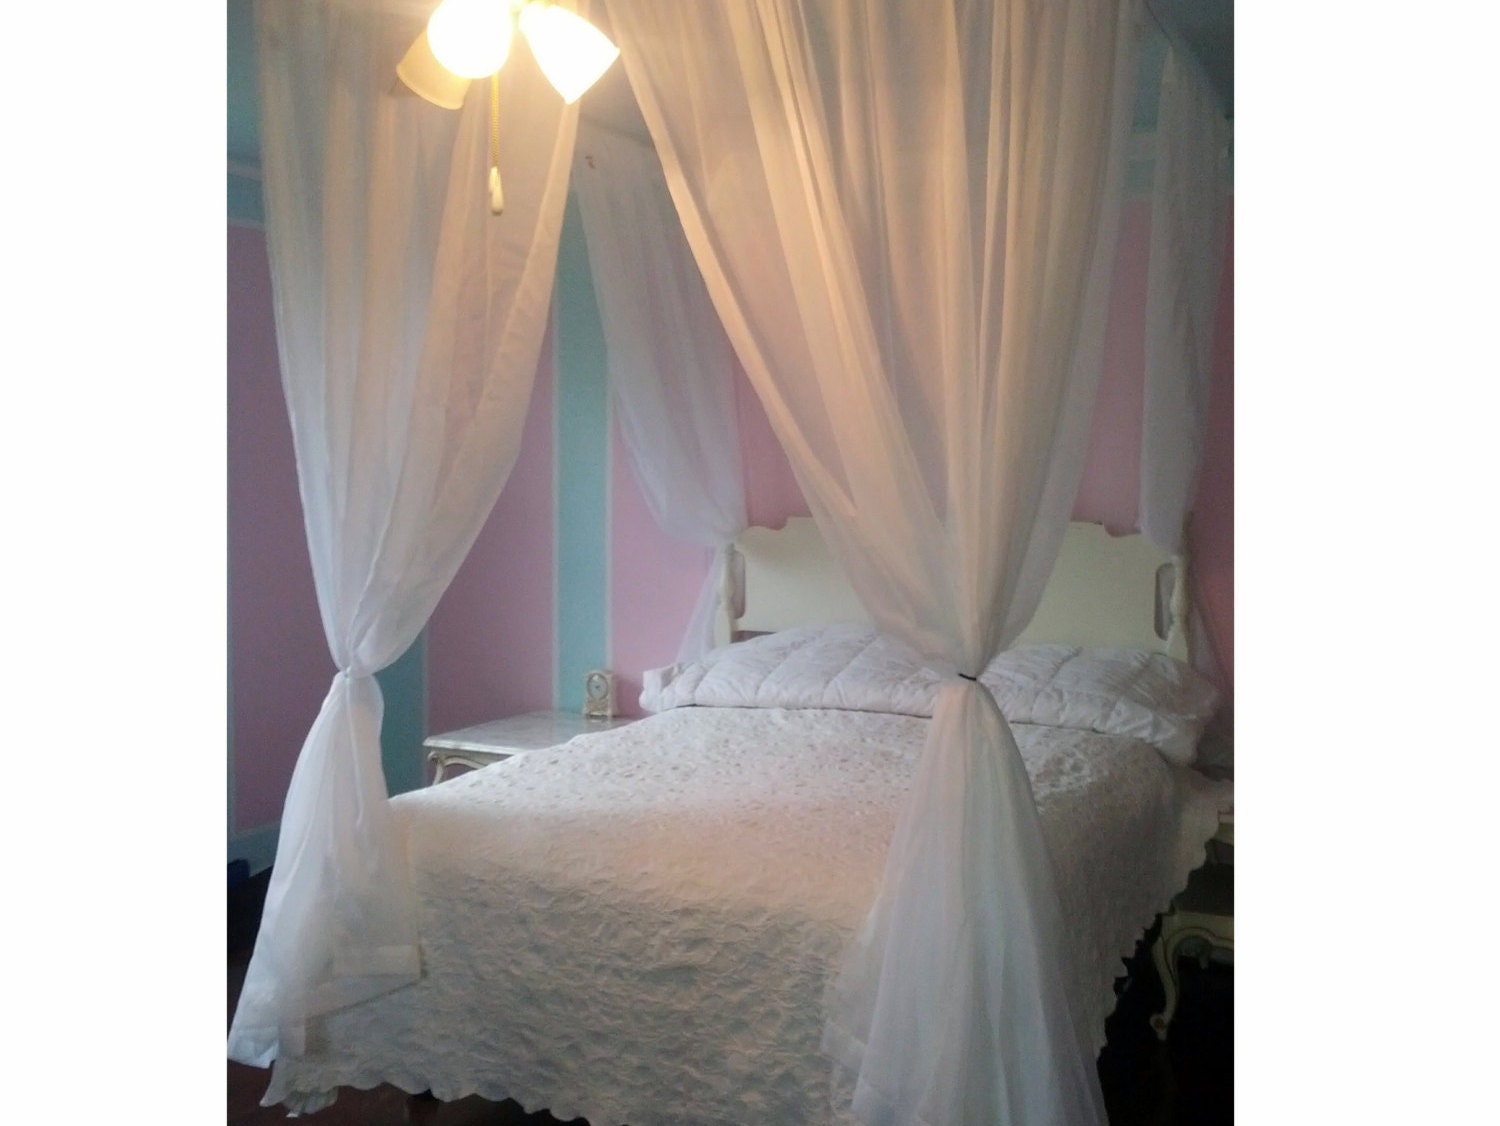 zoom Diy Princess Bed Canopy For Kids